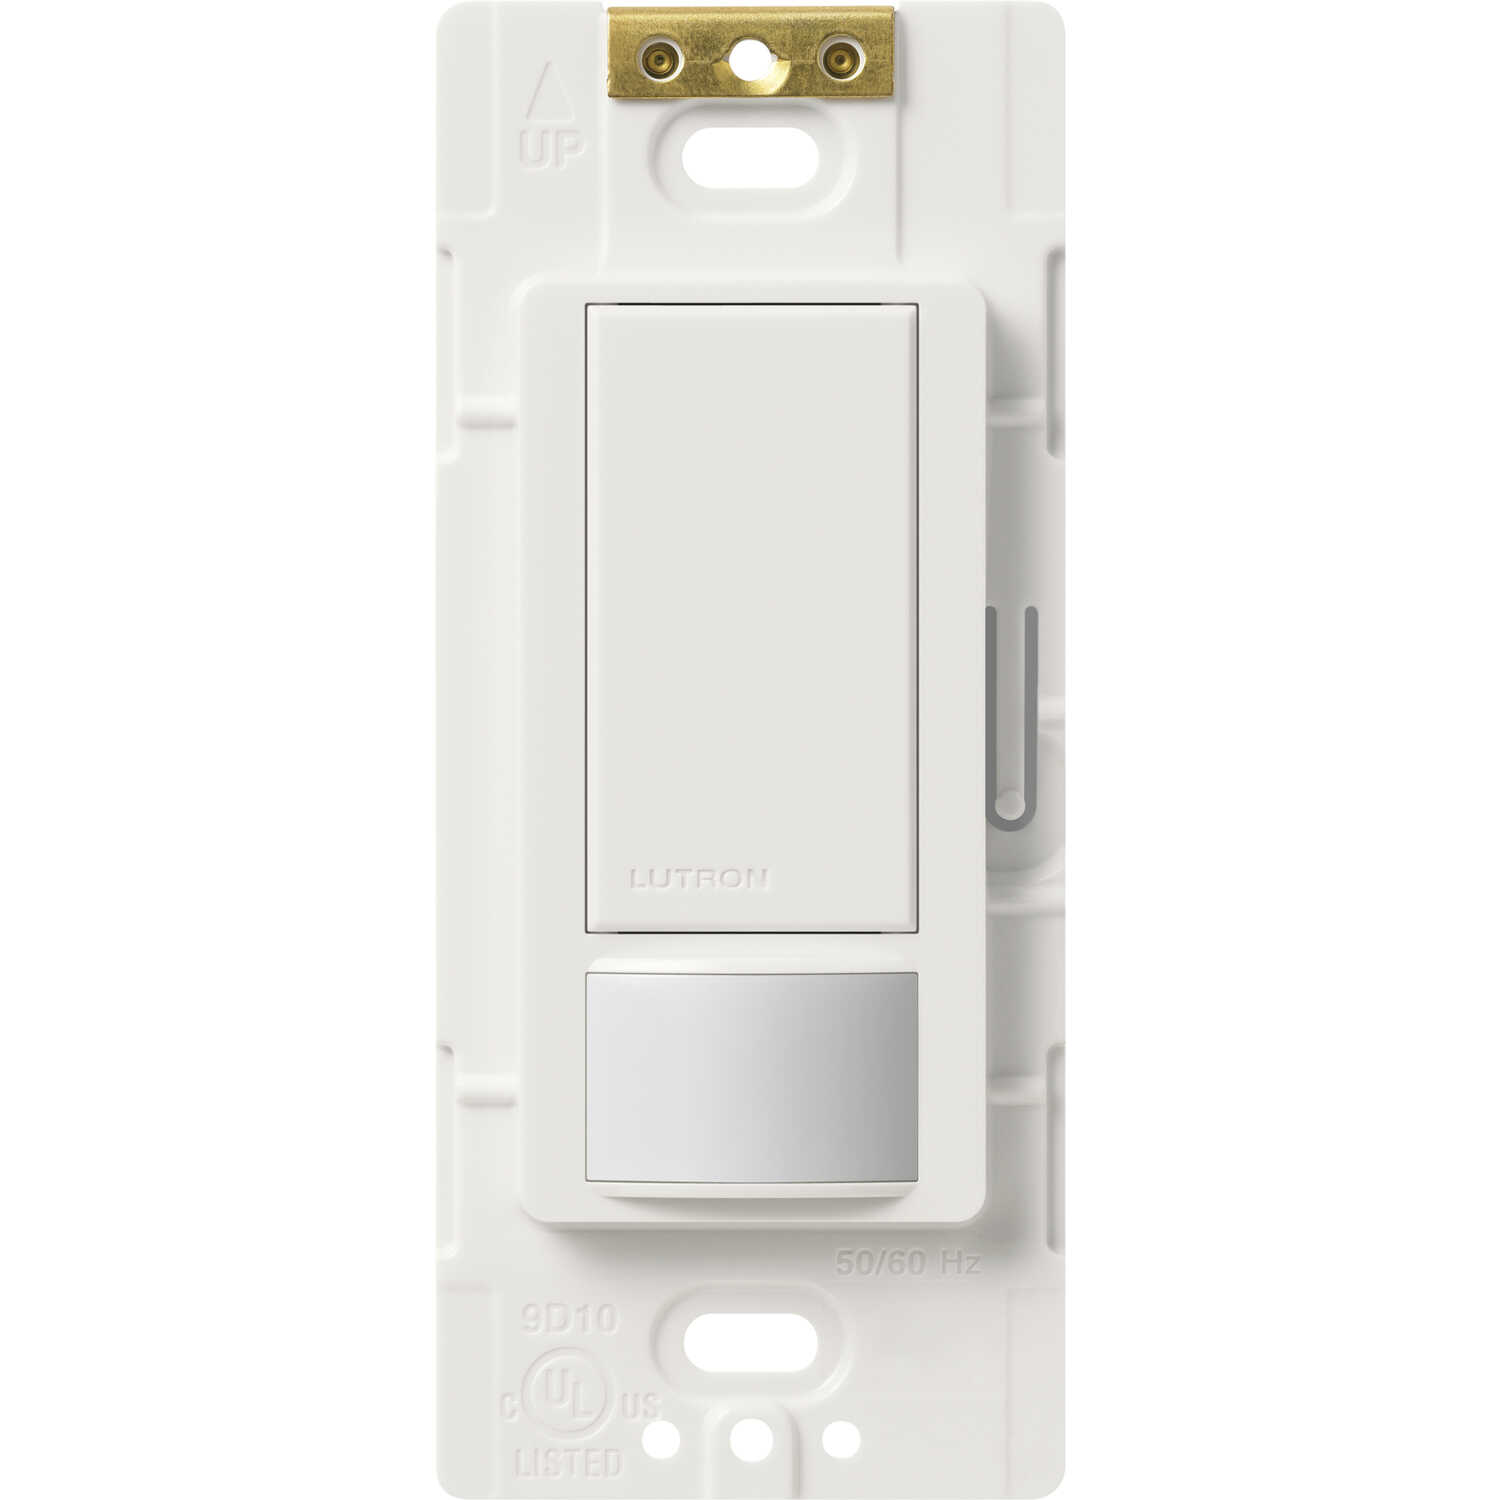 Lutron  Maestro Occupancy  Single pole  Motion Sensor  Triple Combination Switch  White  1 pk